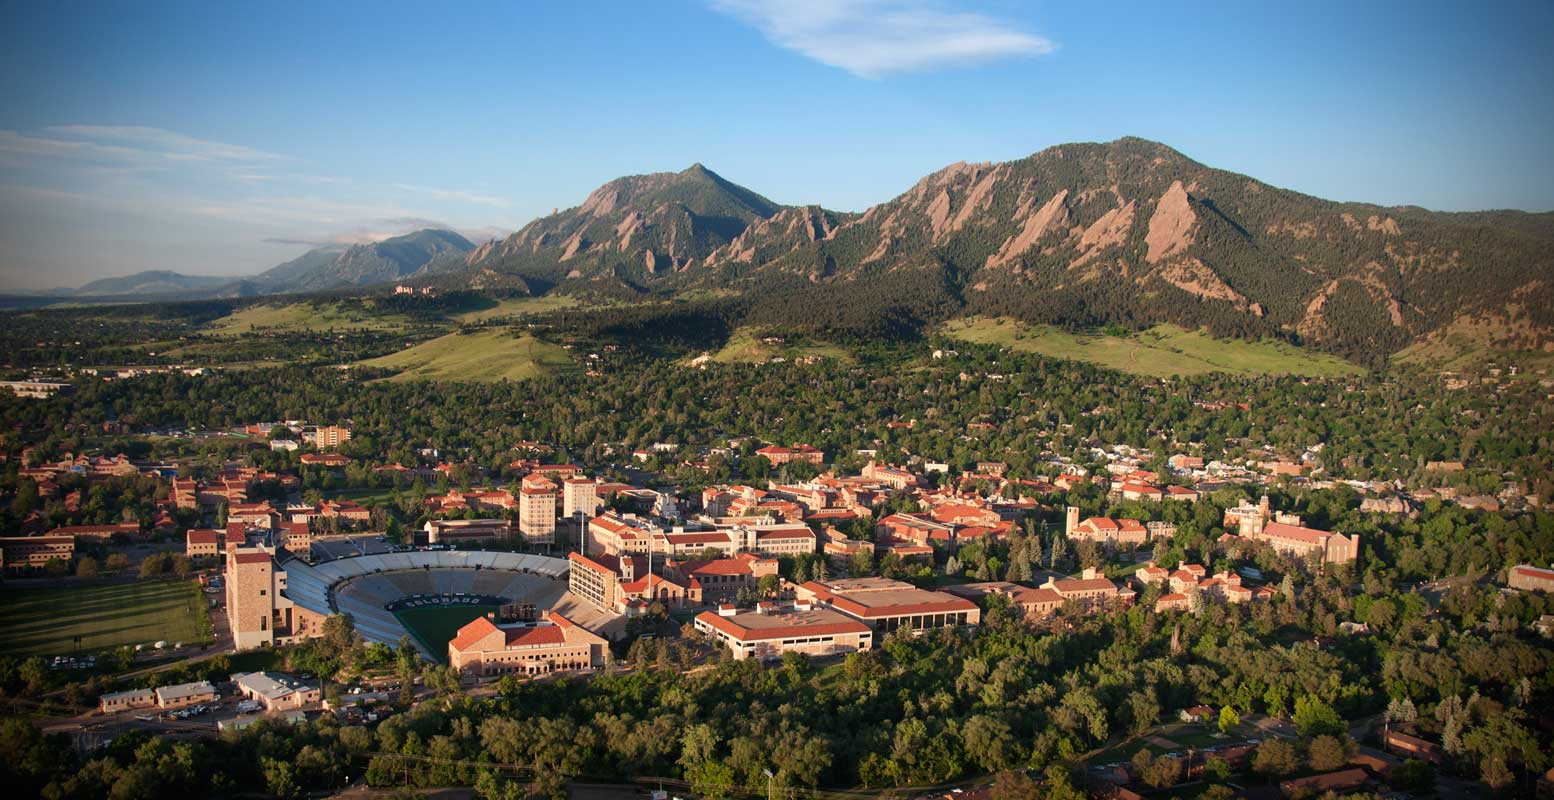 Top 5 most fascinating college towns in america for Top 5 best cities in usa